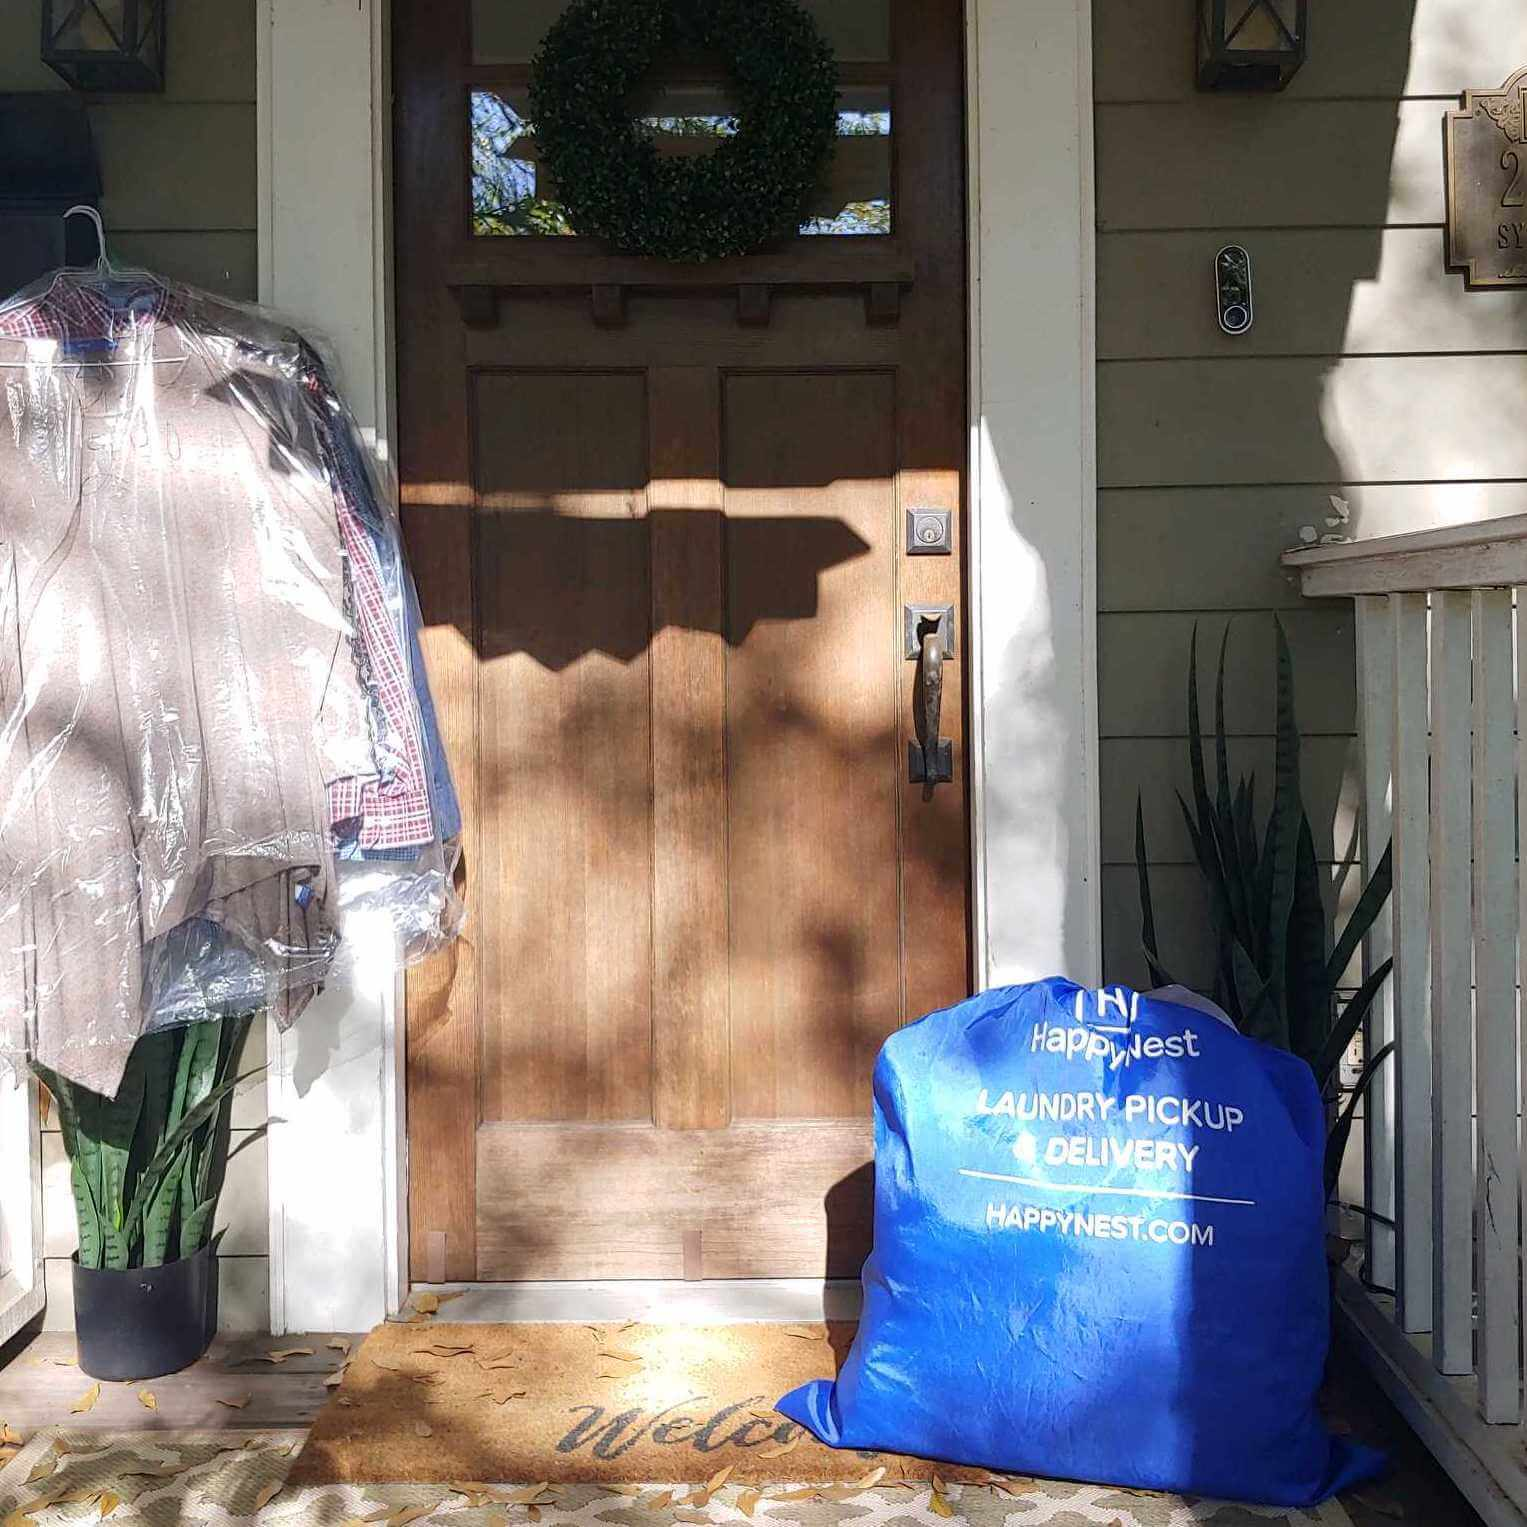 HappyNest Pickup and Delivery Laundry Service Now Available in Denver via Sunshine Dry Cleaners & Laundromat